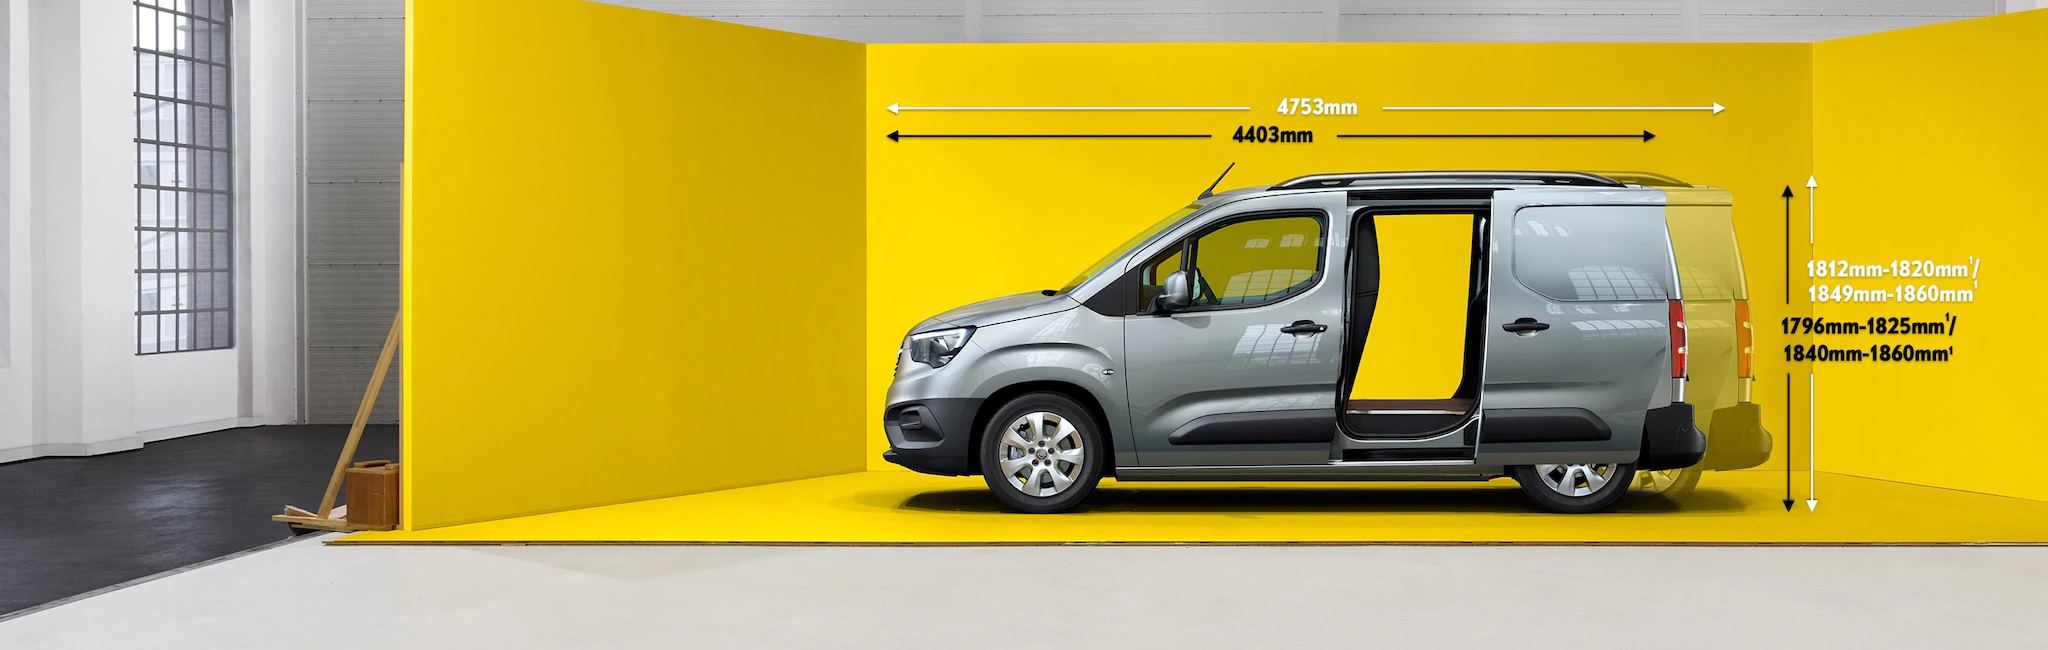 Opel_combo_cargo_measurements_21x9_cmc19_e01_053